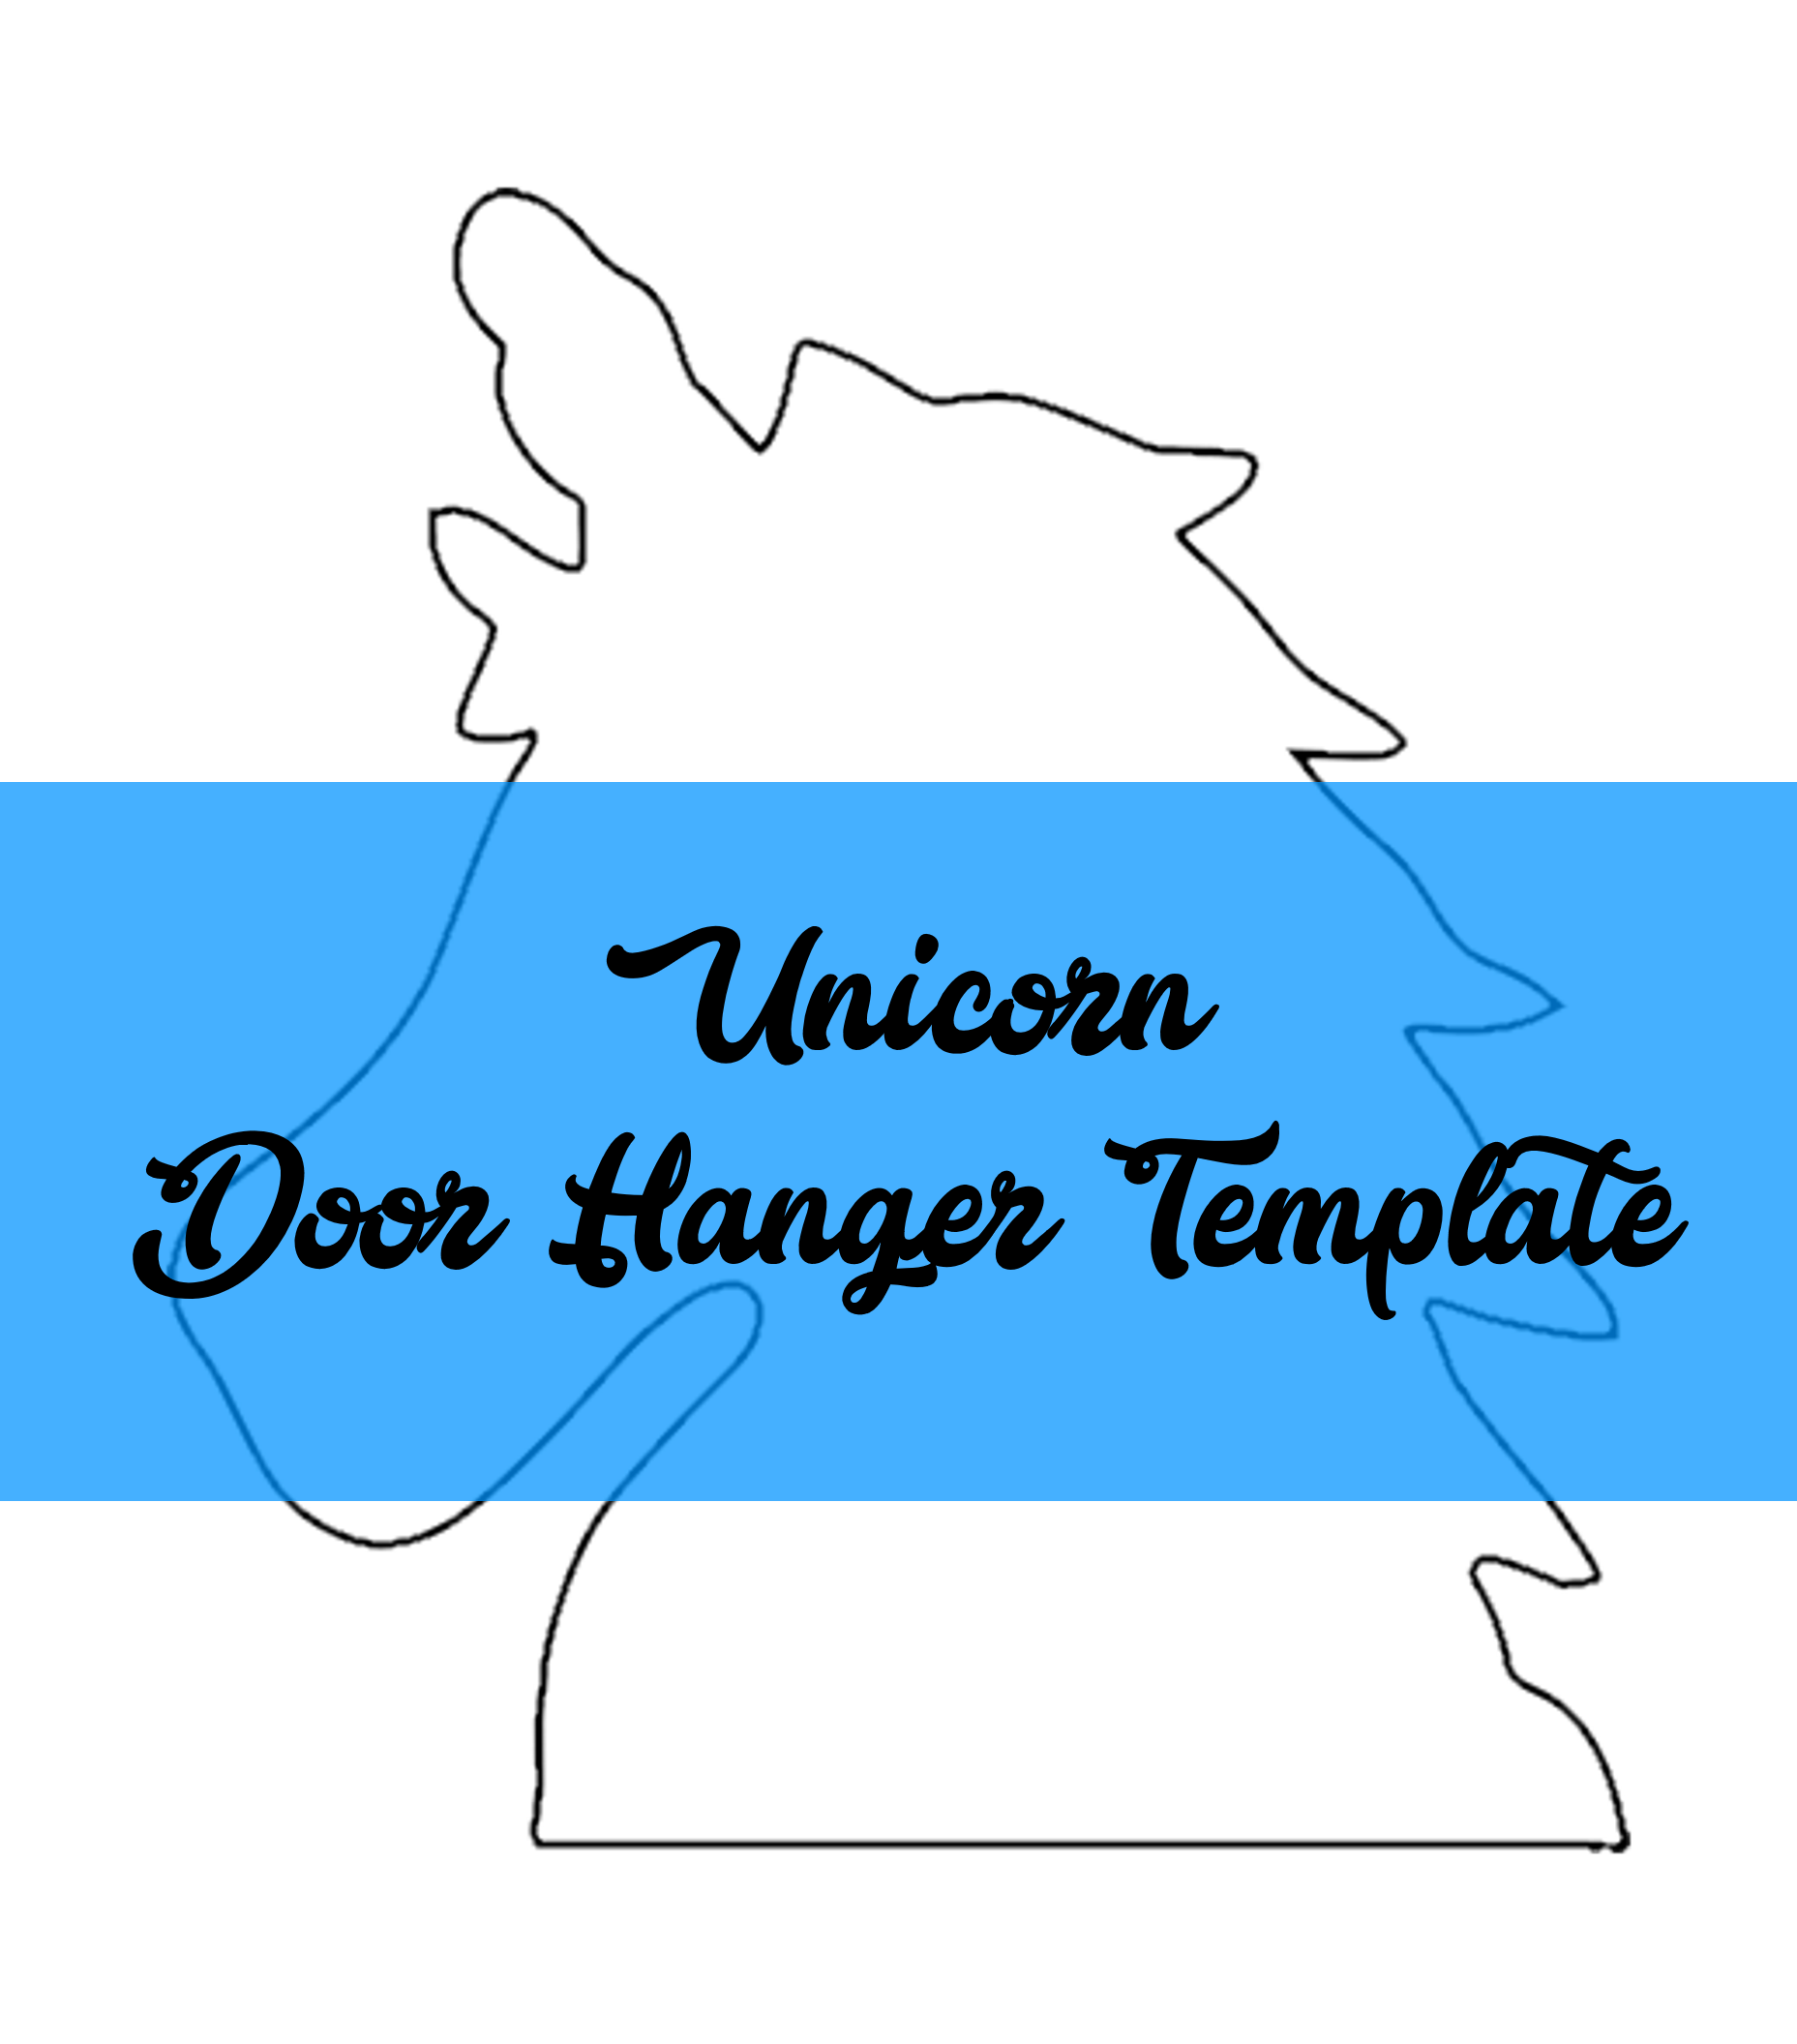 Unicorn Door Hanger Template Door Hanger Templates Pinterest